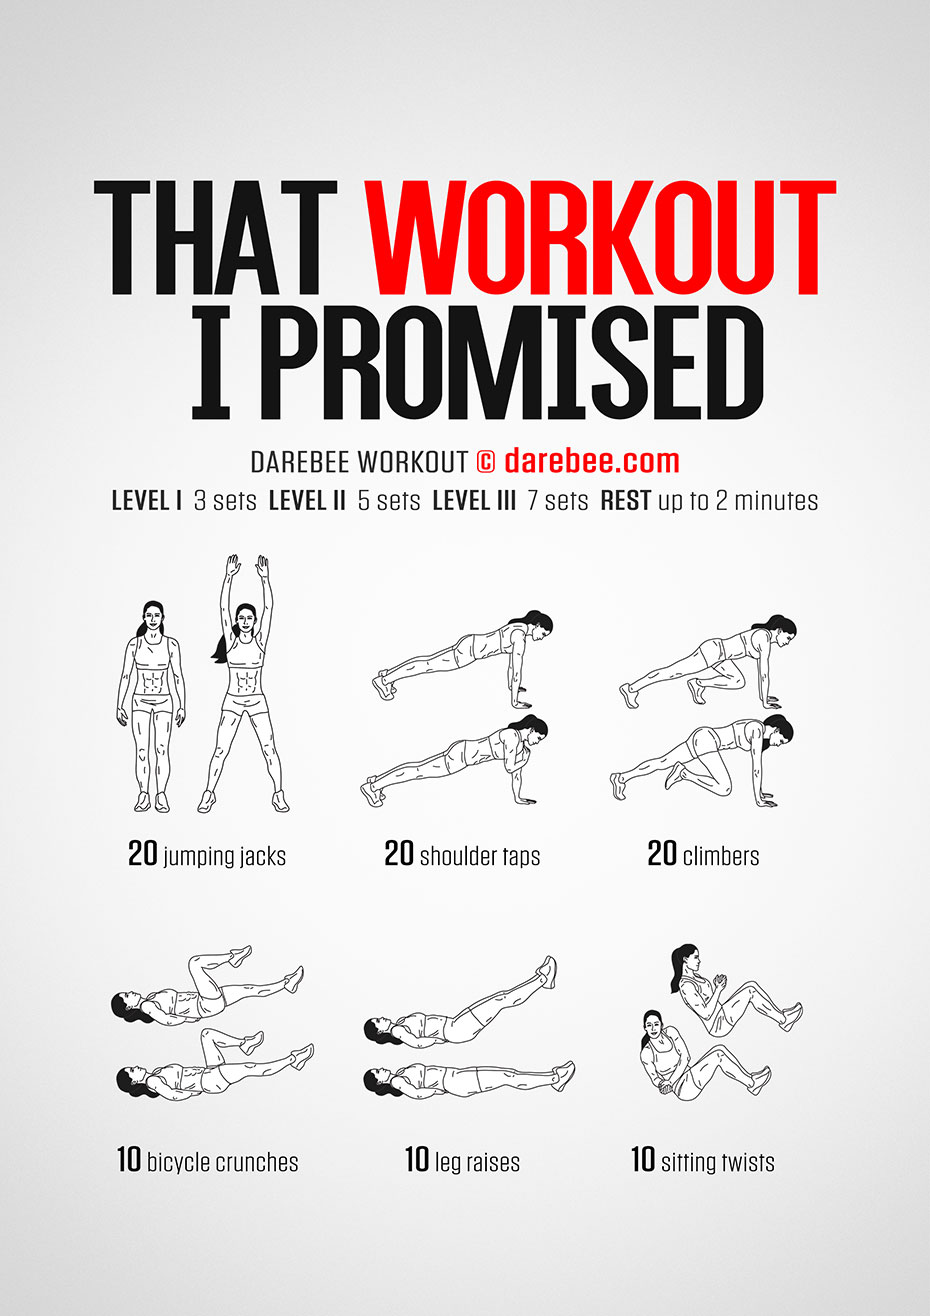 Workout I Promised Workout by #DAREBEE #workout #fitness #fit #exercise #exerciseideas #abs #cardio